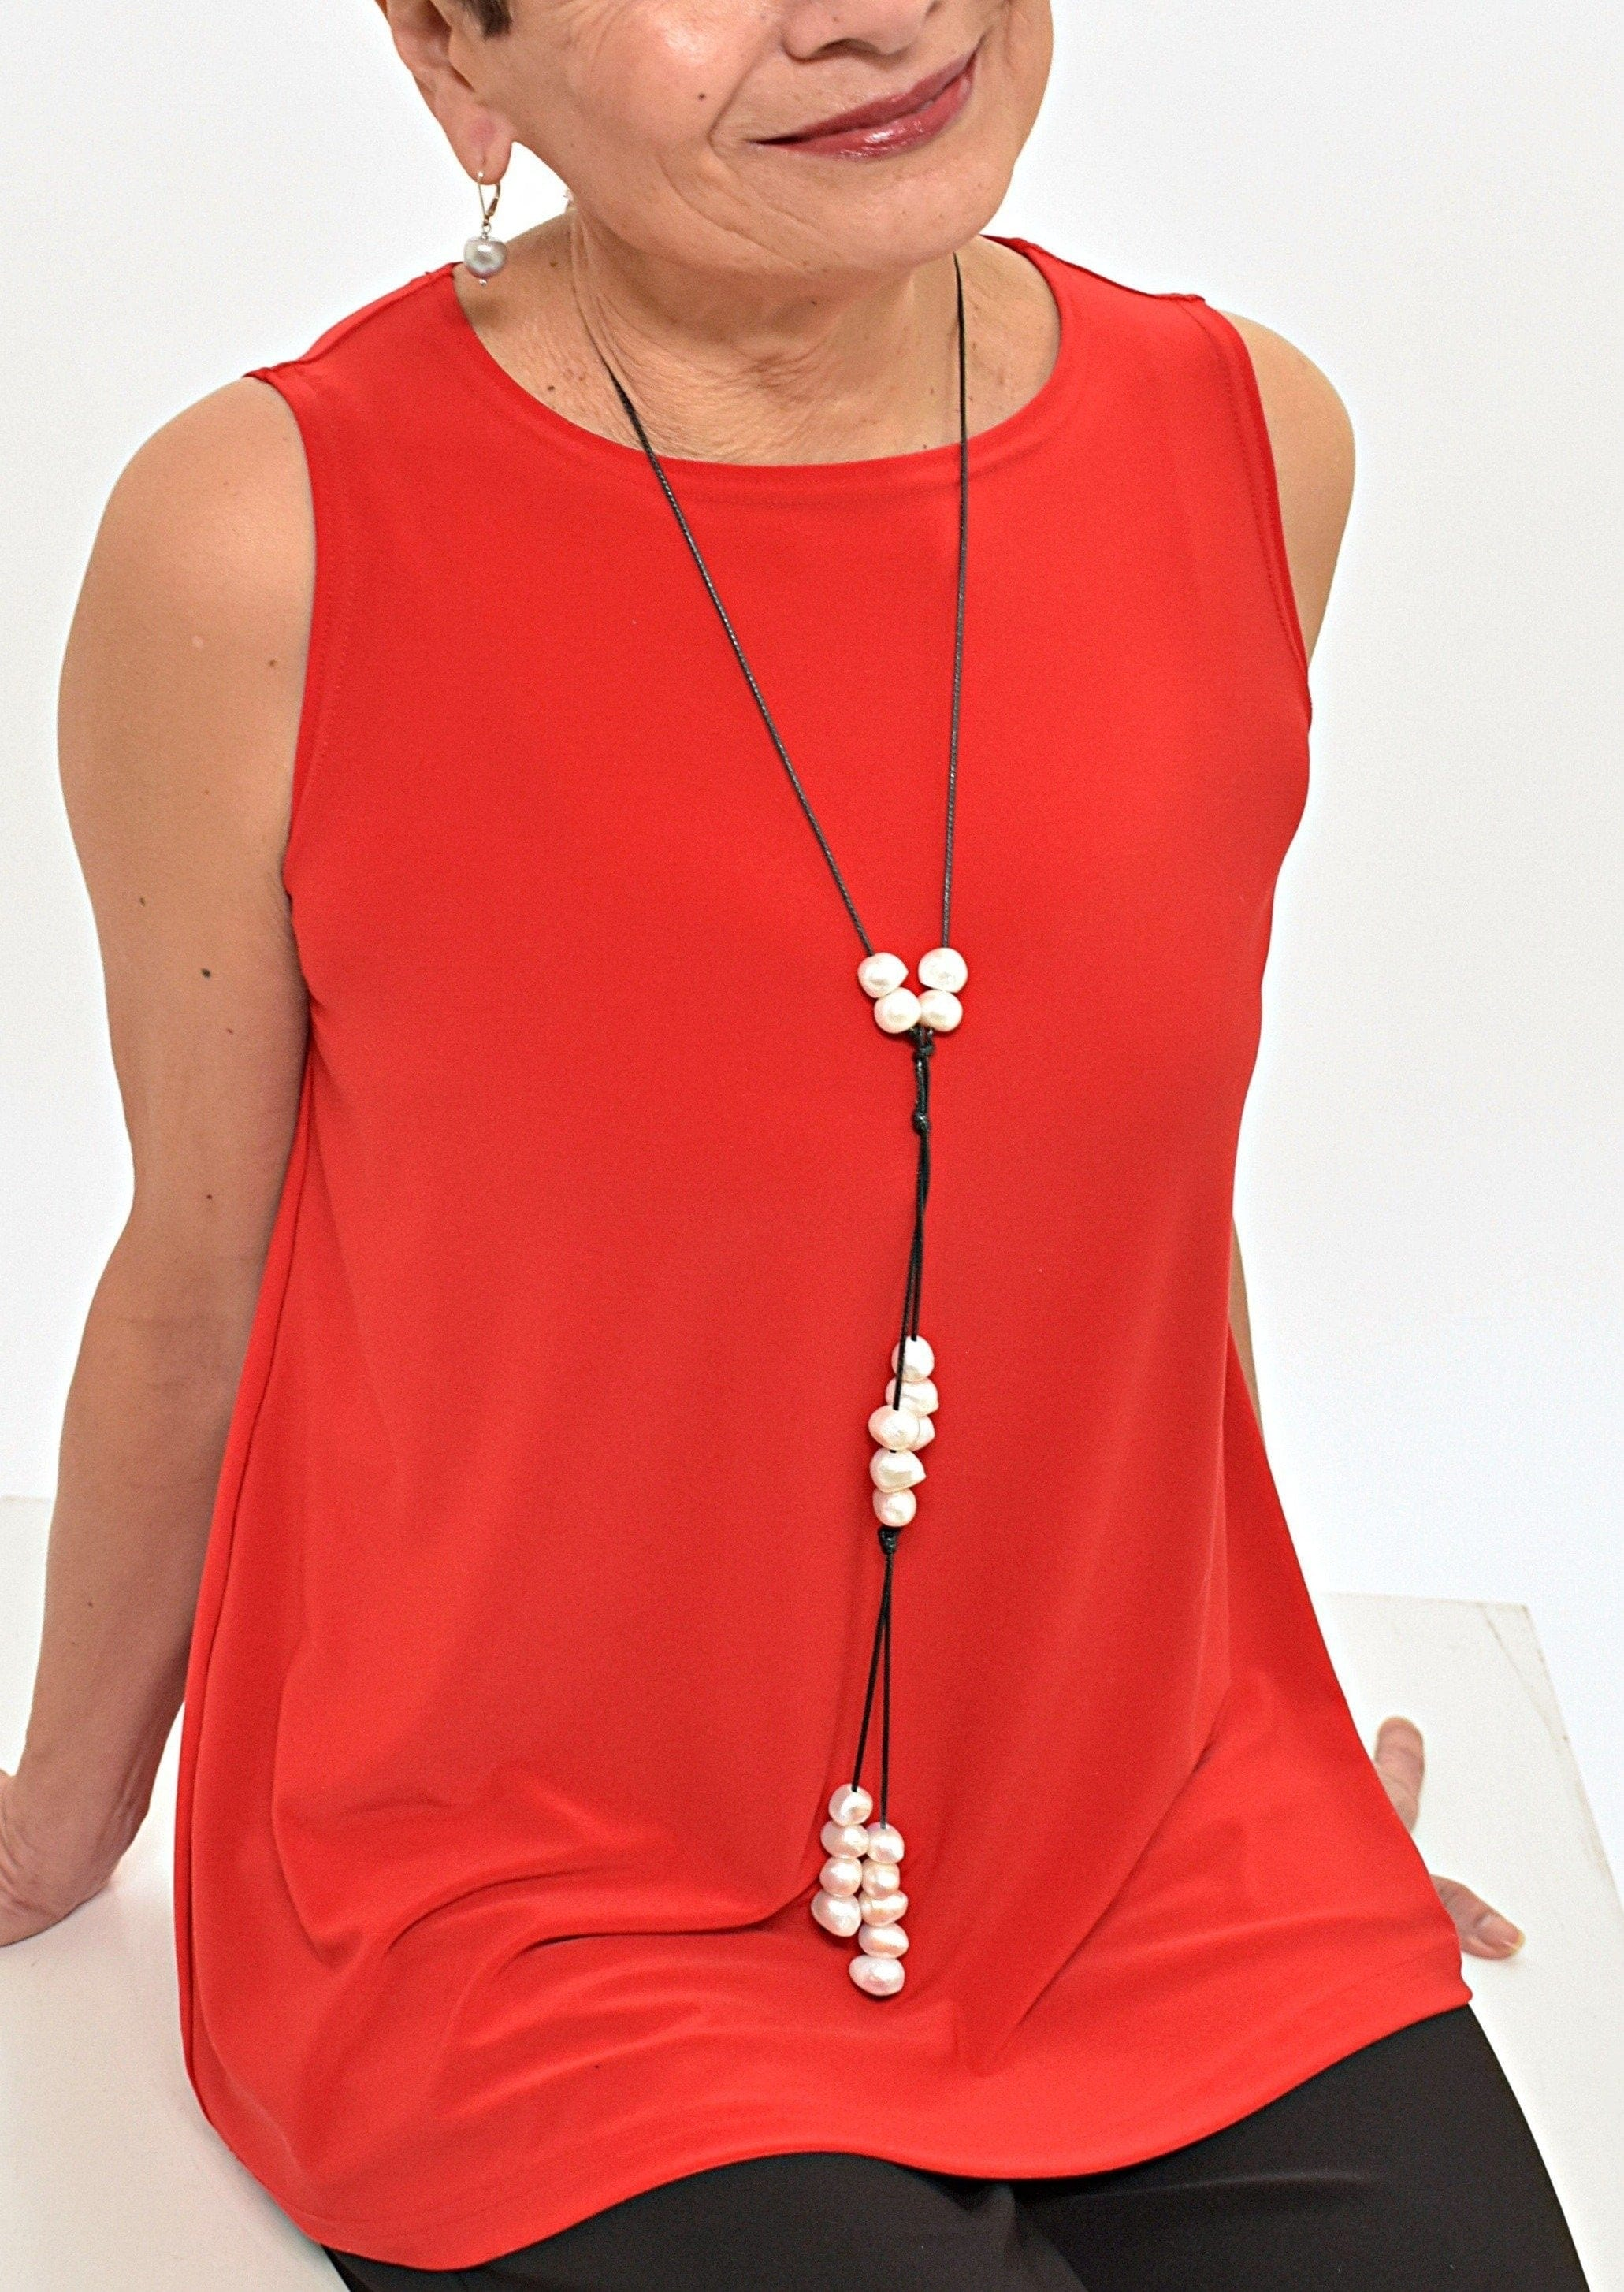 SLIDING KNOT PEARL NECKLACE - WANTED